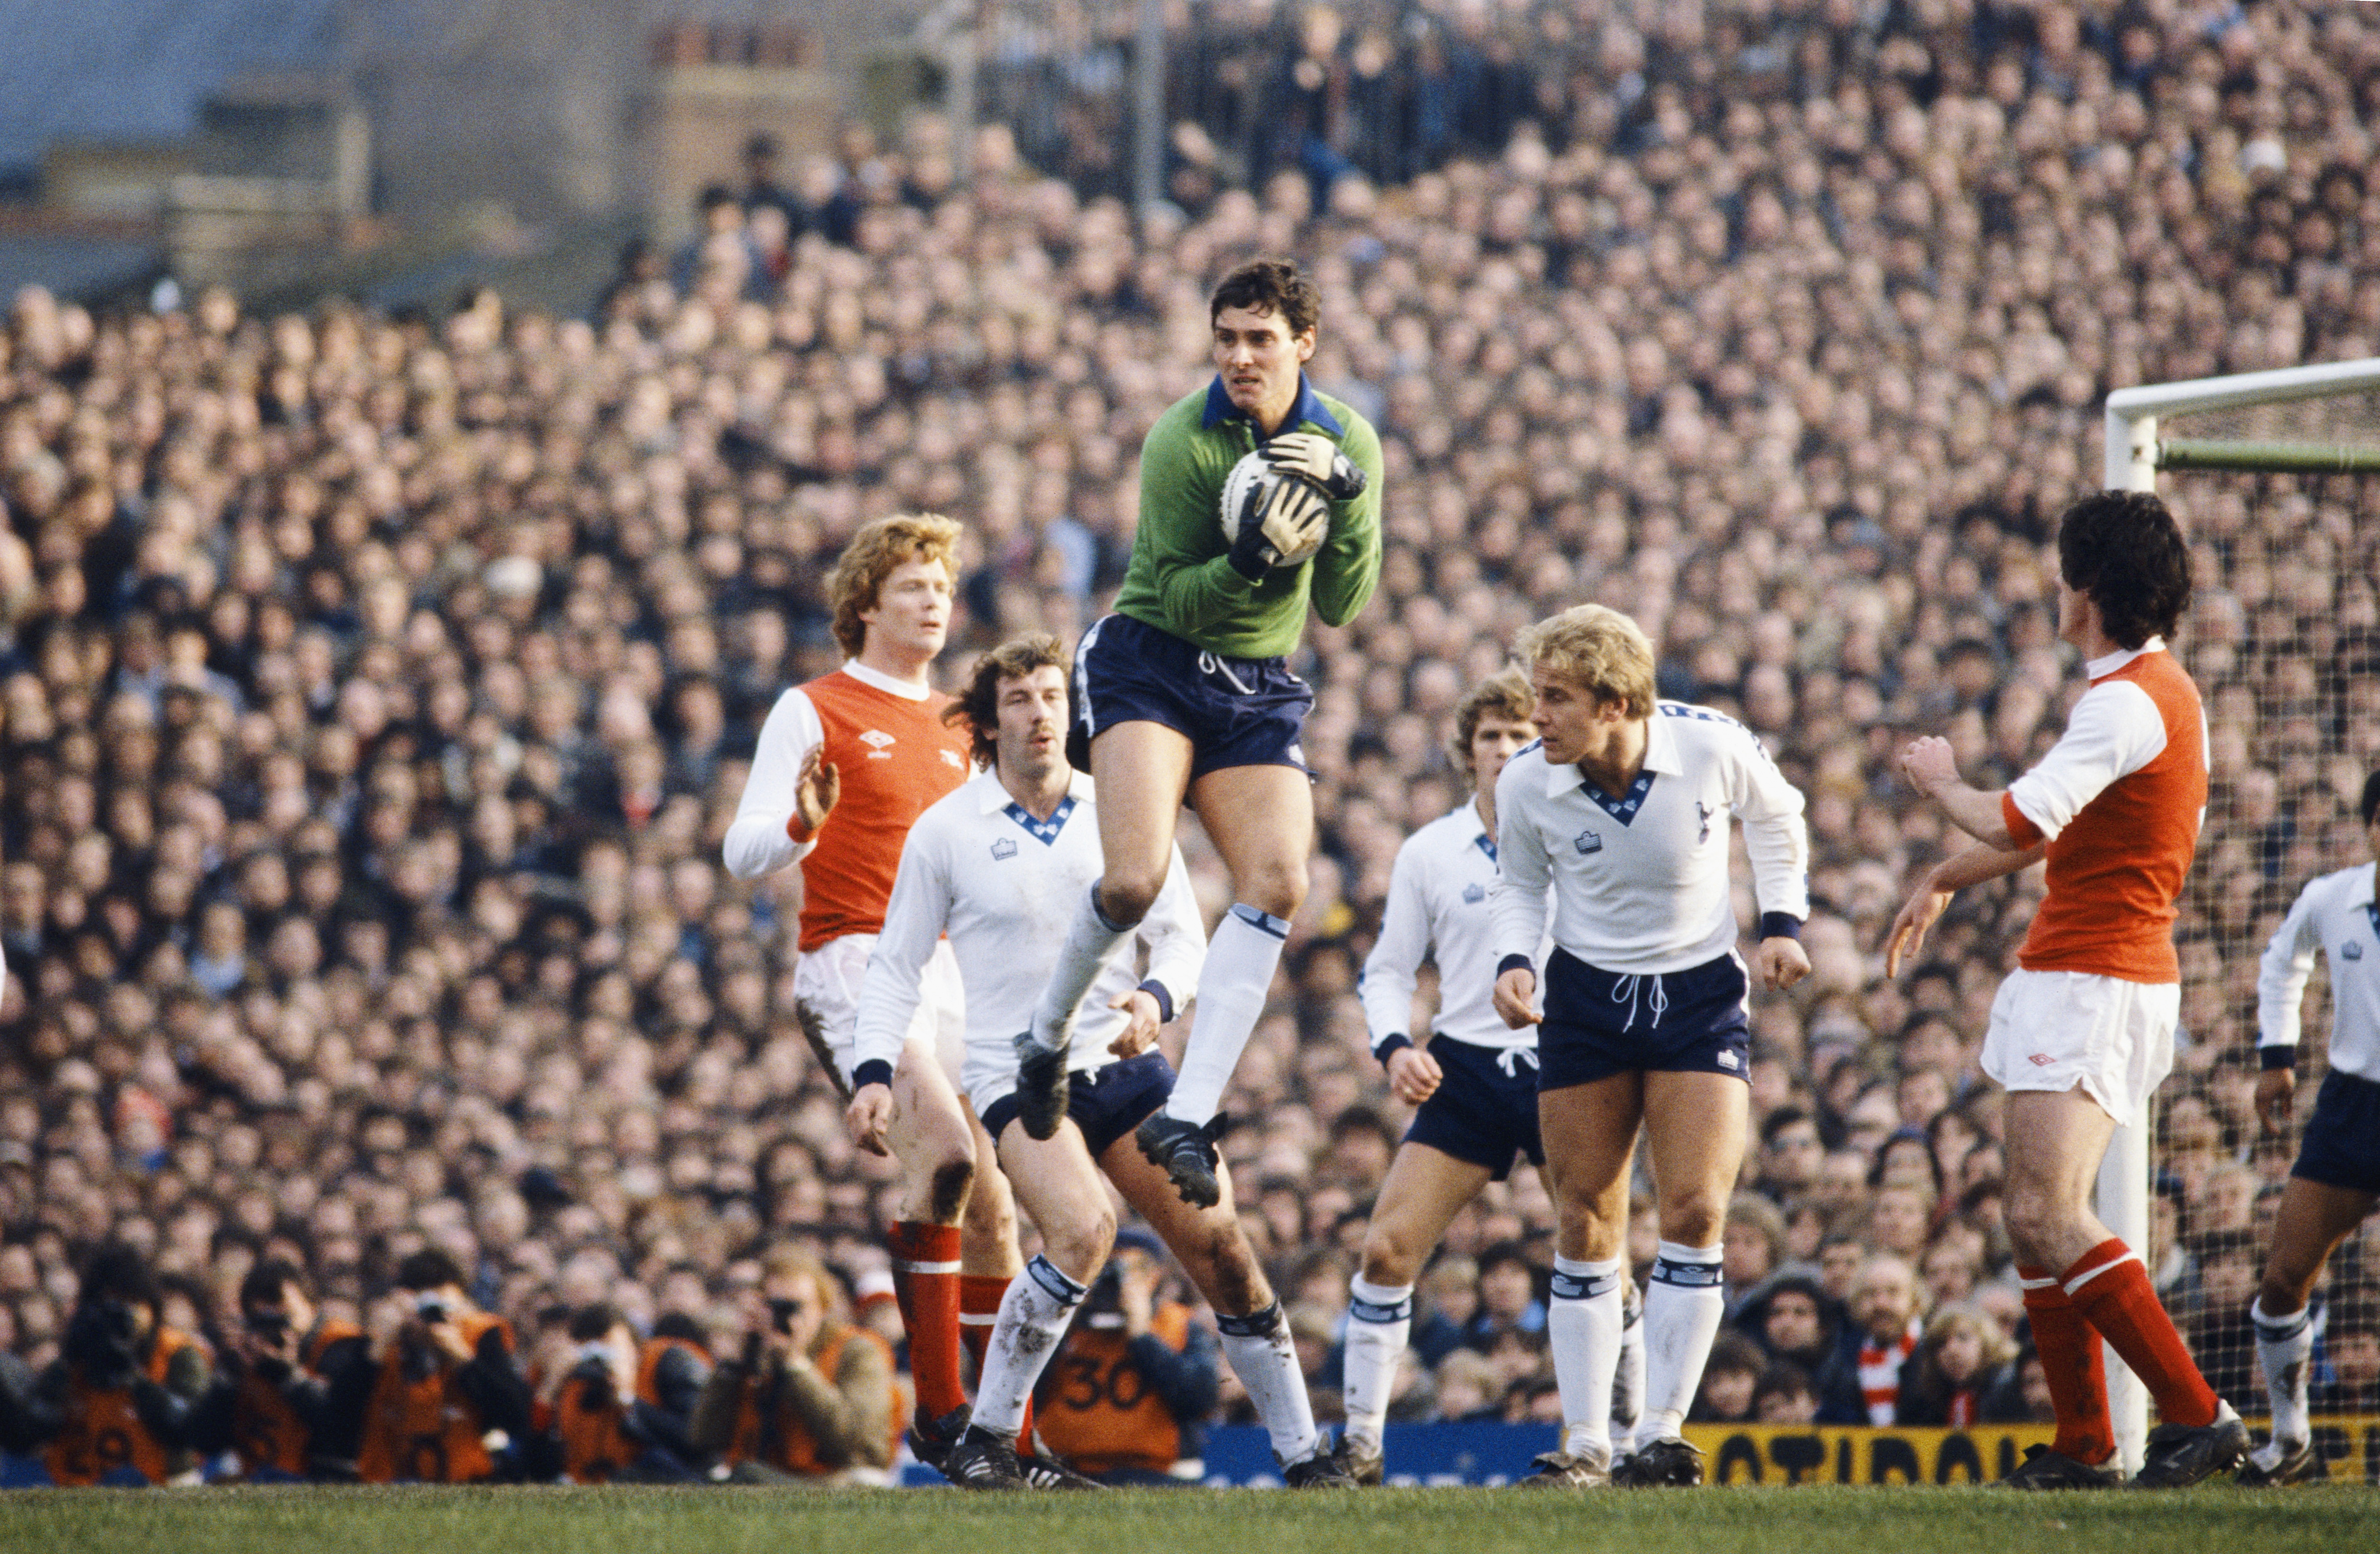 LONDON, UNITED KINGDOM - DECEMBER 26: Spurs goalkeeper Milija Aleksic claims a cross watched by Arsenal players Willie Young (l) and Frank Stapleton (r) alongside Spurs players Gerry Armstrong (2nd left) and Don McAllister (2nd right) during a First Division match between Arsenal and Tottenham Hotspur at Highbury on December 26, 1979 in London, England. (Photo by Duncan Raban/Allsport/Getty Images)